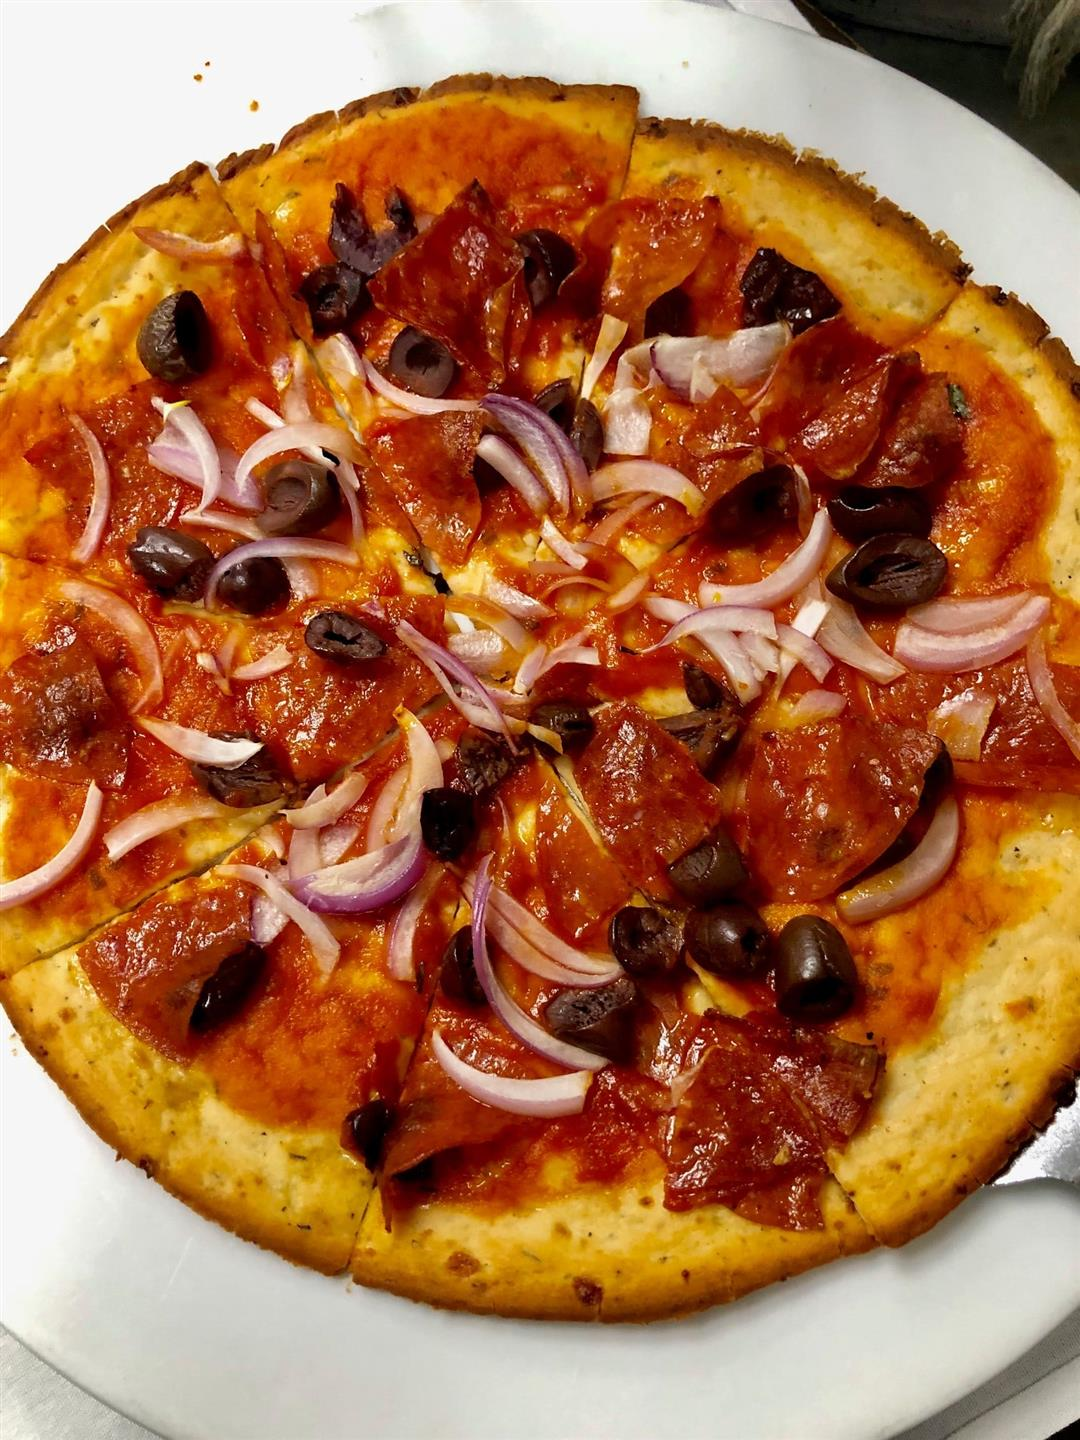 Pizza with sauce, olives, pepperoni, and chopped onion